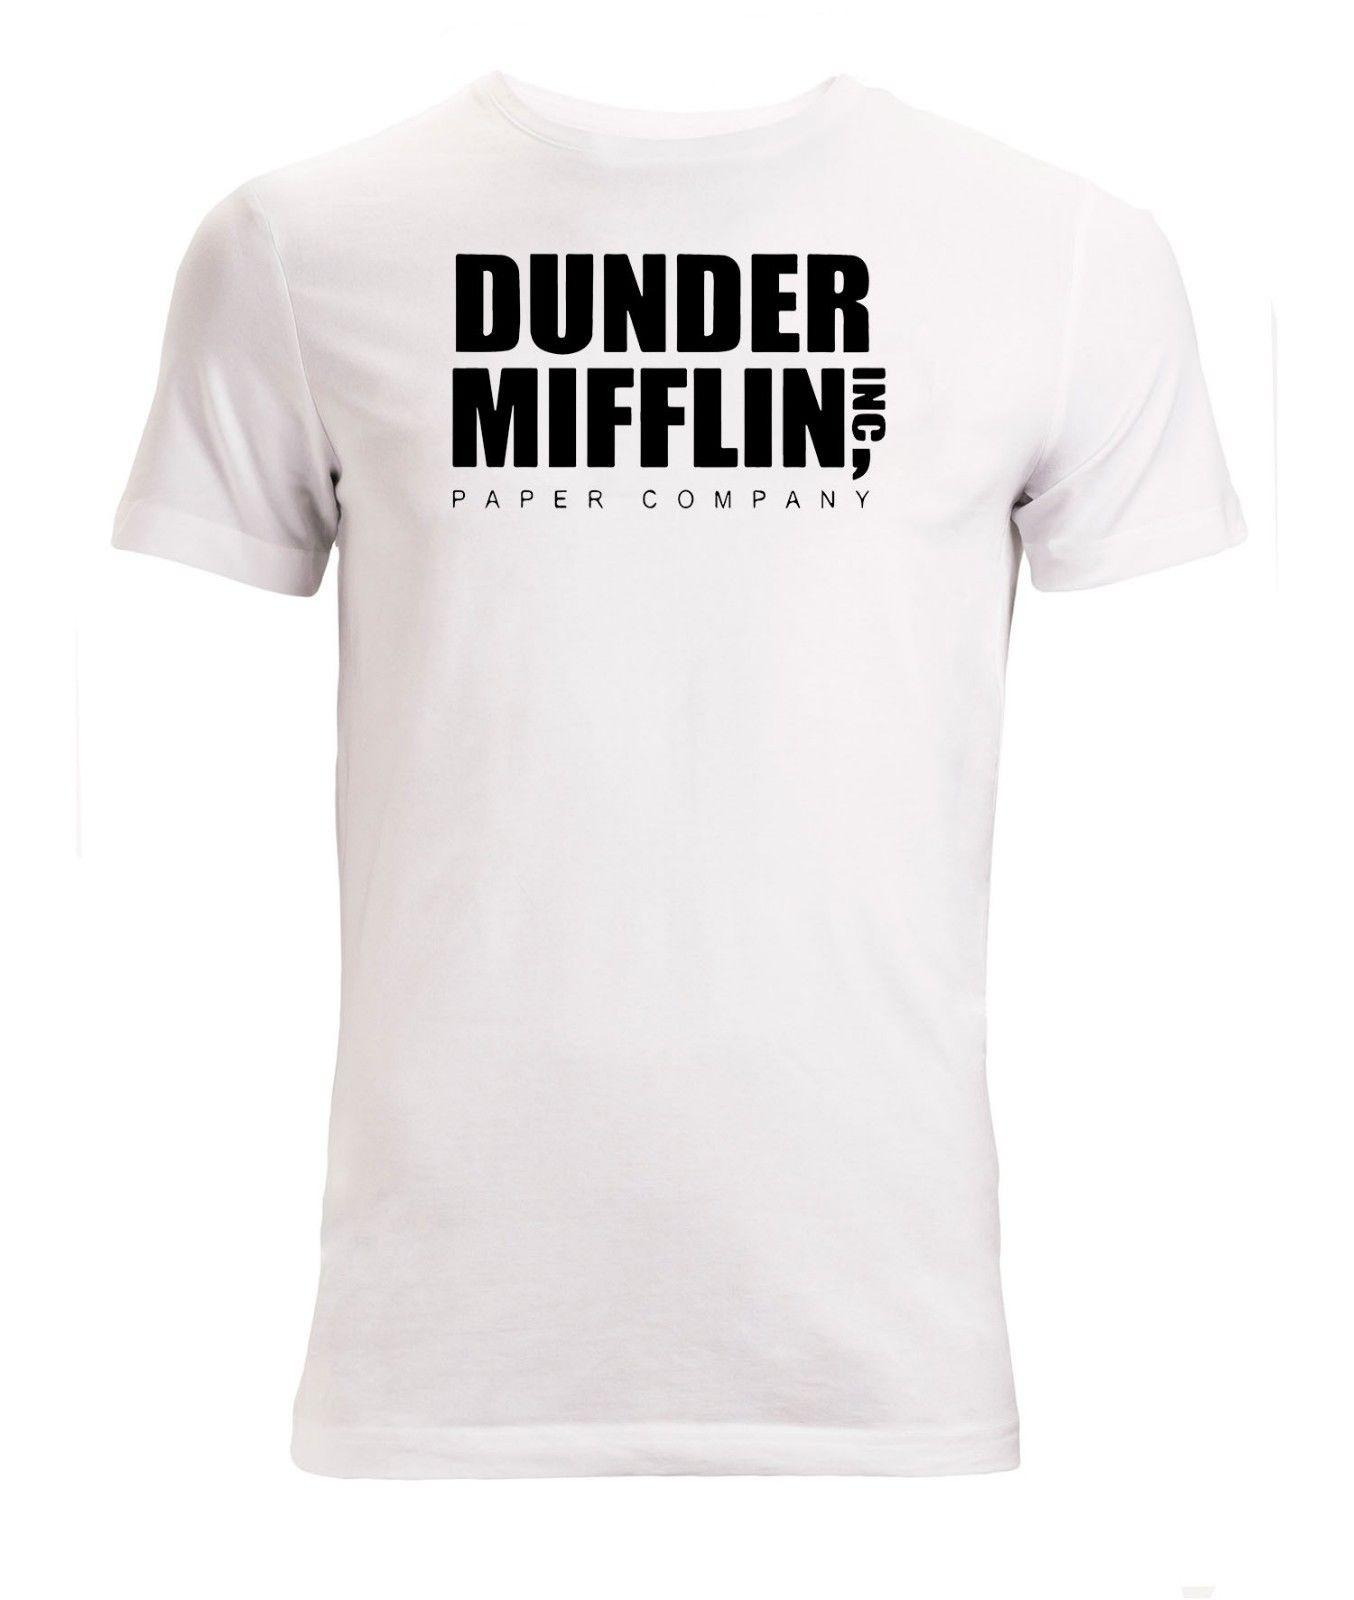 af5e7b33 Dunder Mifflin Inc Paper Company The Office Men's White T-Shirt Sizes  S-XXLFunny free shipping Unisex Casual Tshirt top